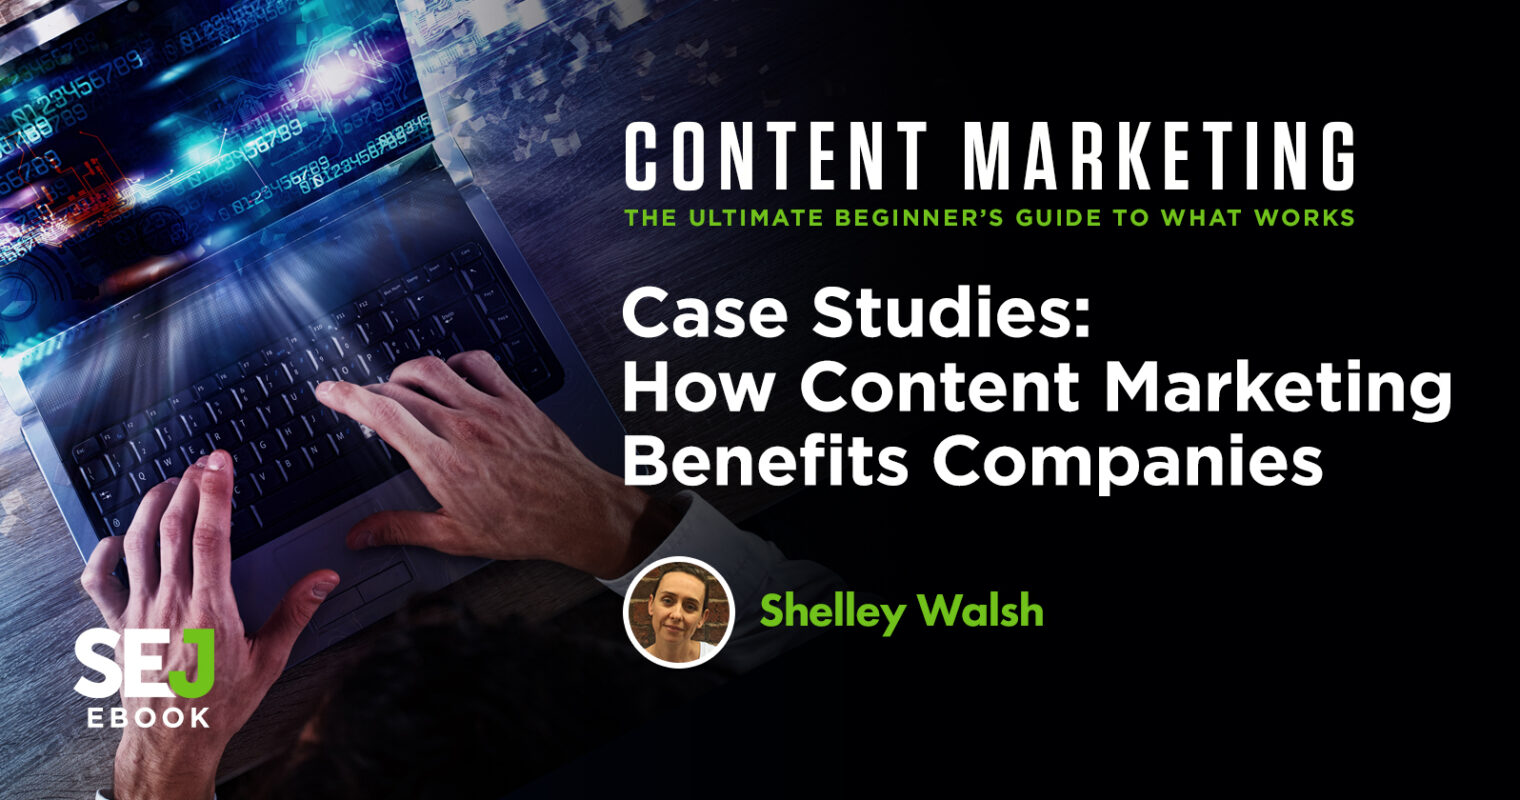 Case Studies: How Content Marketing Benefits Companies